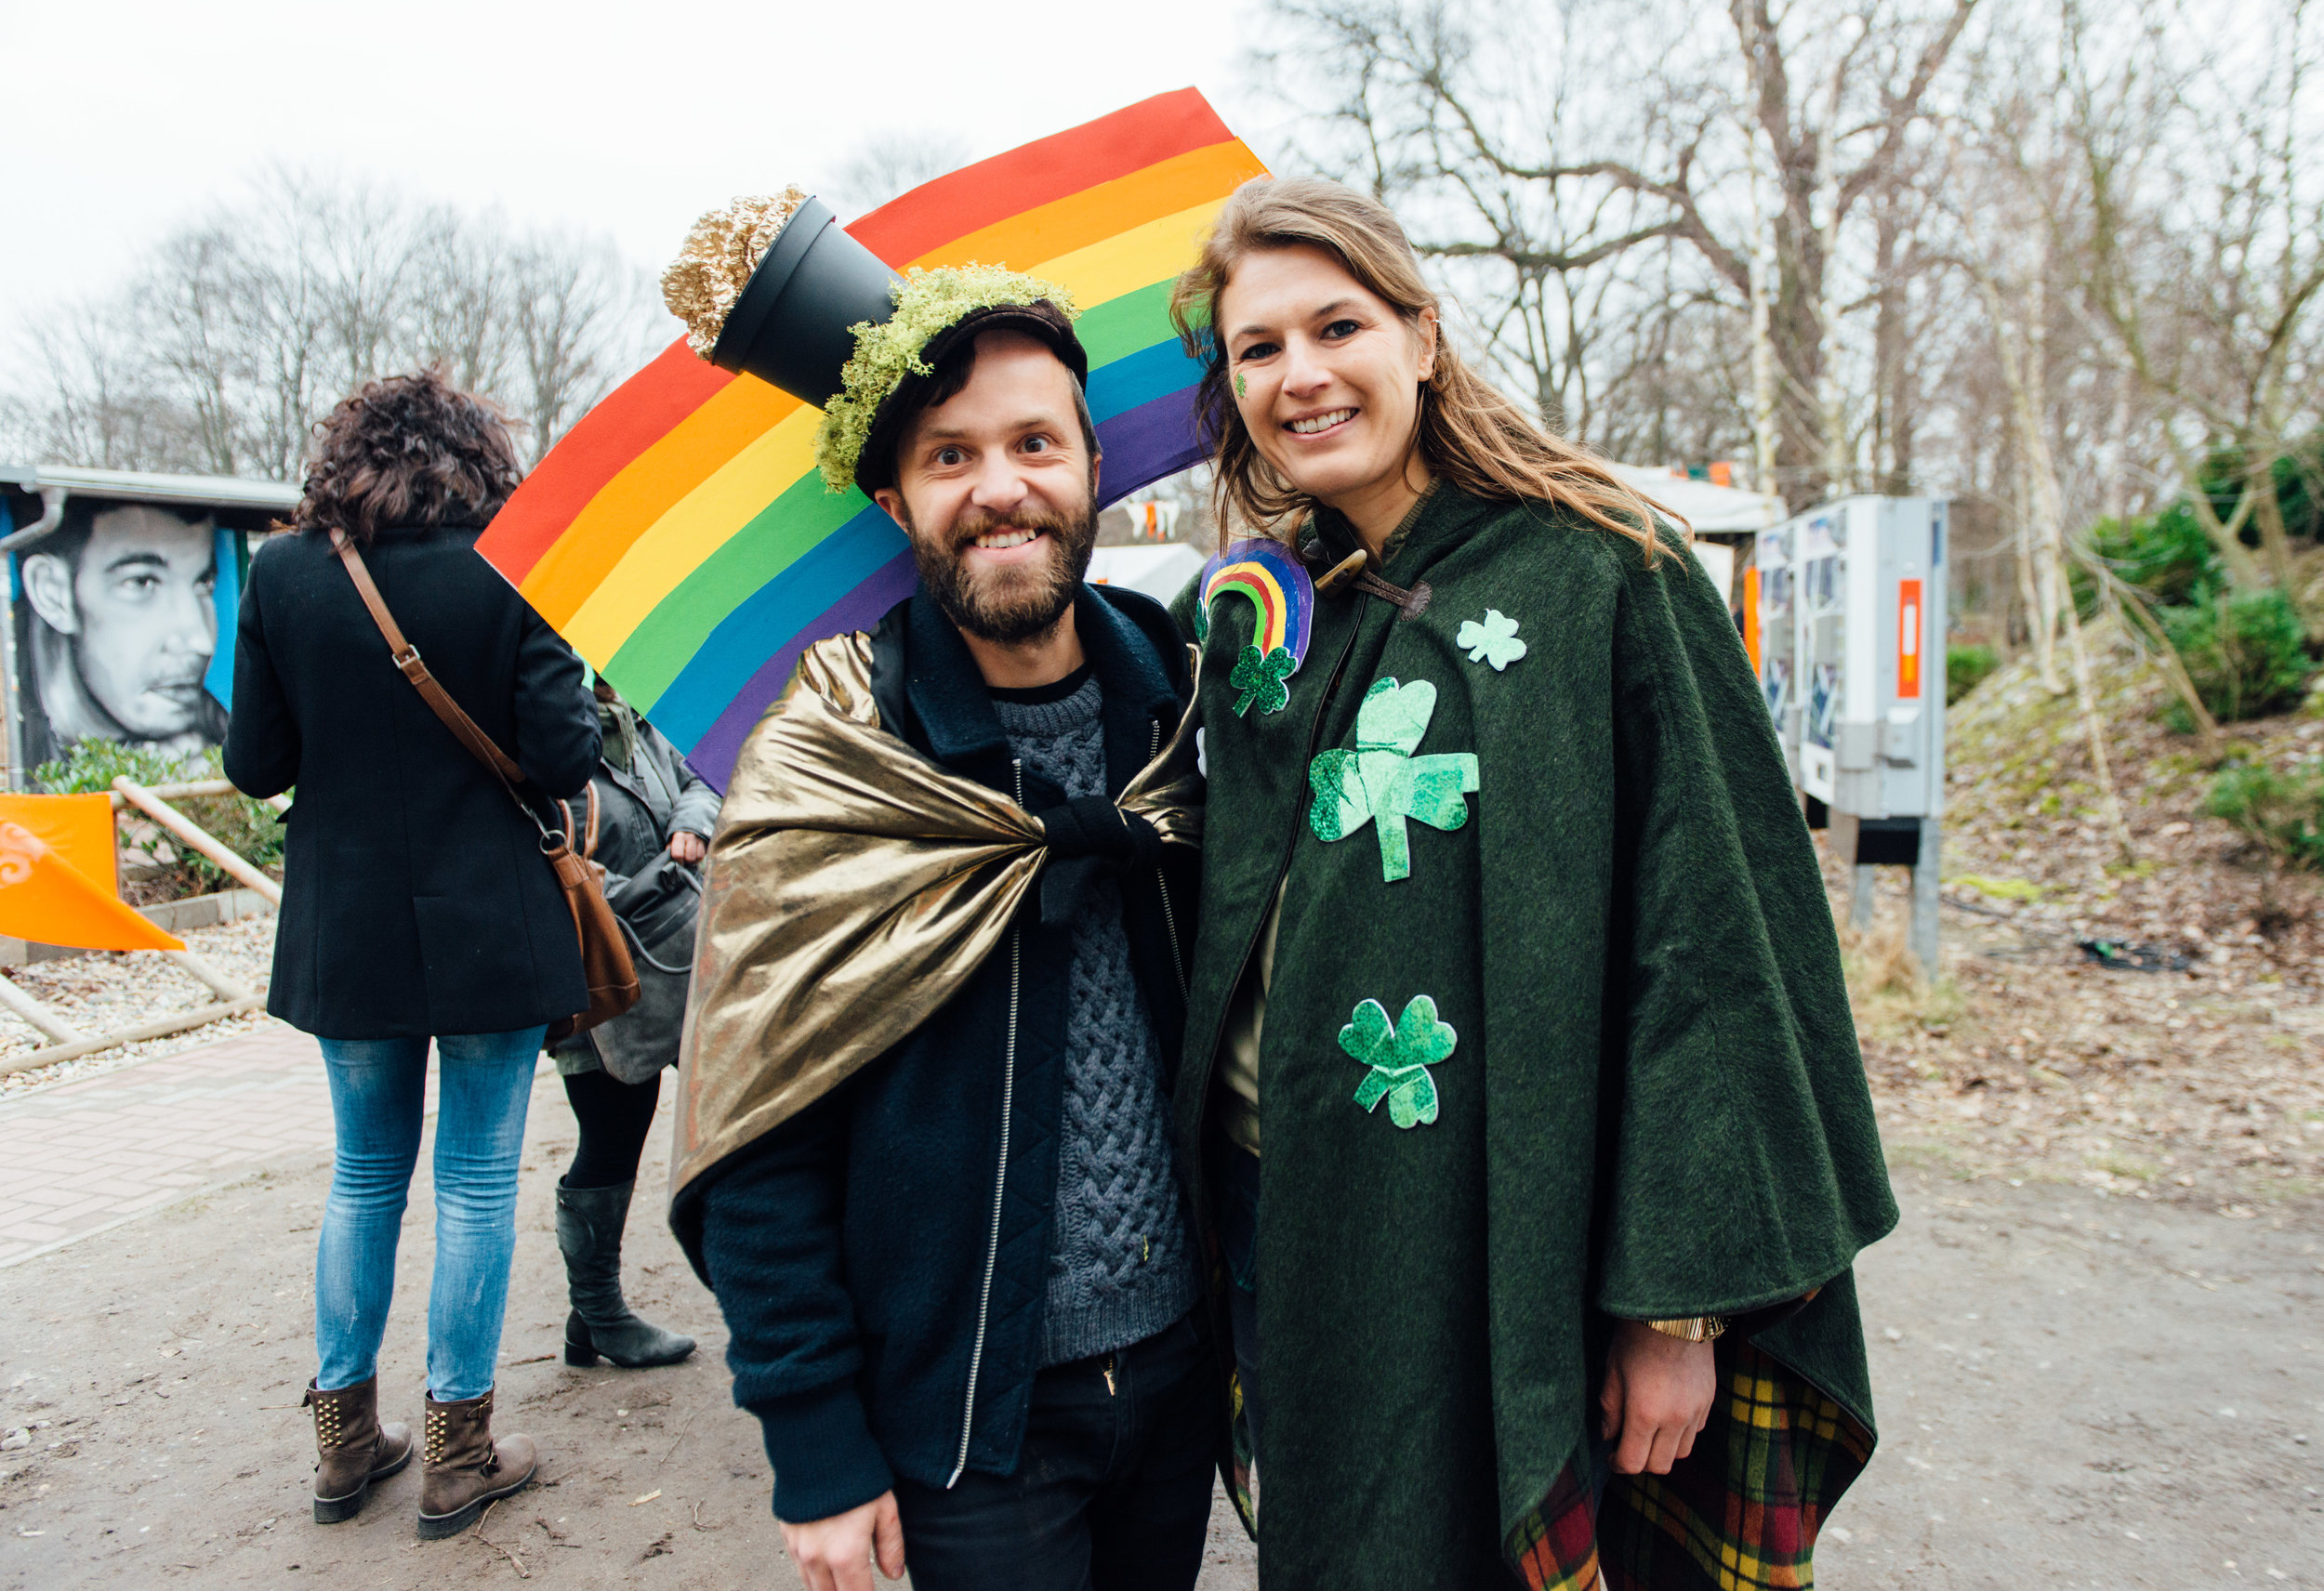 st-patricks-day-berlin-all-151.jpg